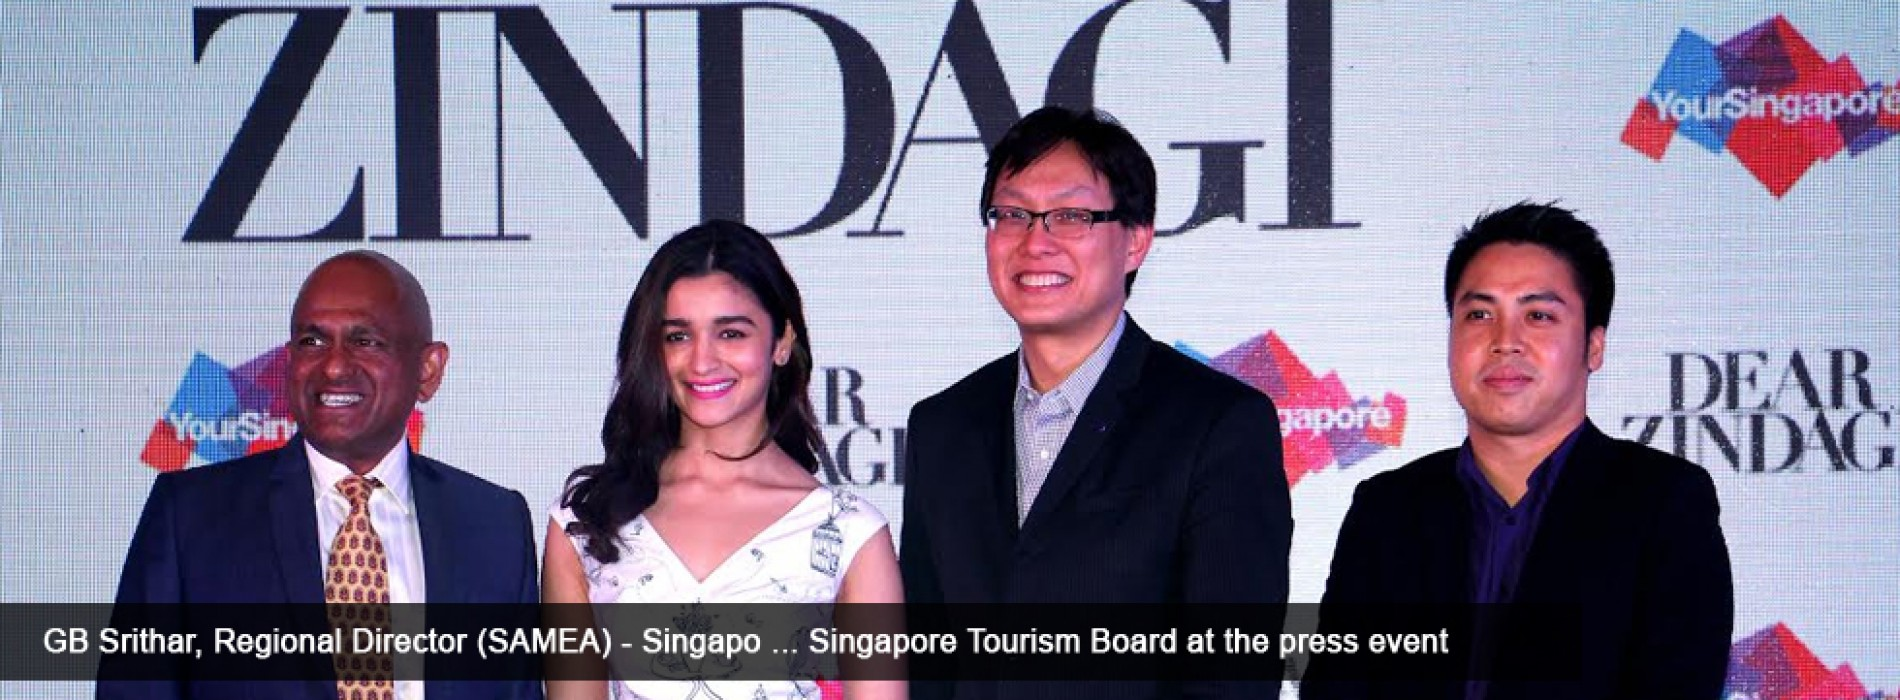 Magical moments in Singapore for cast of Dear Zindagi